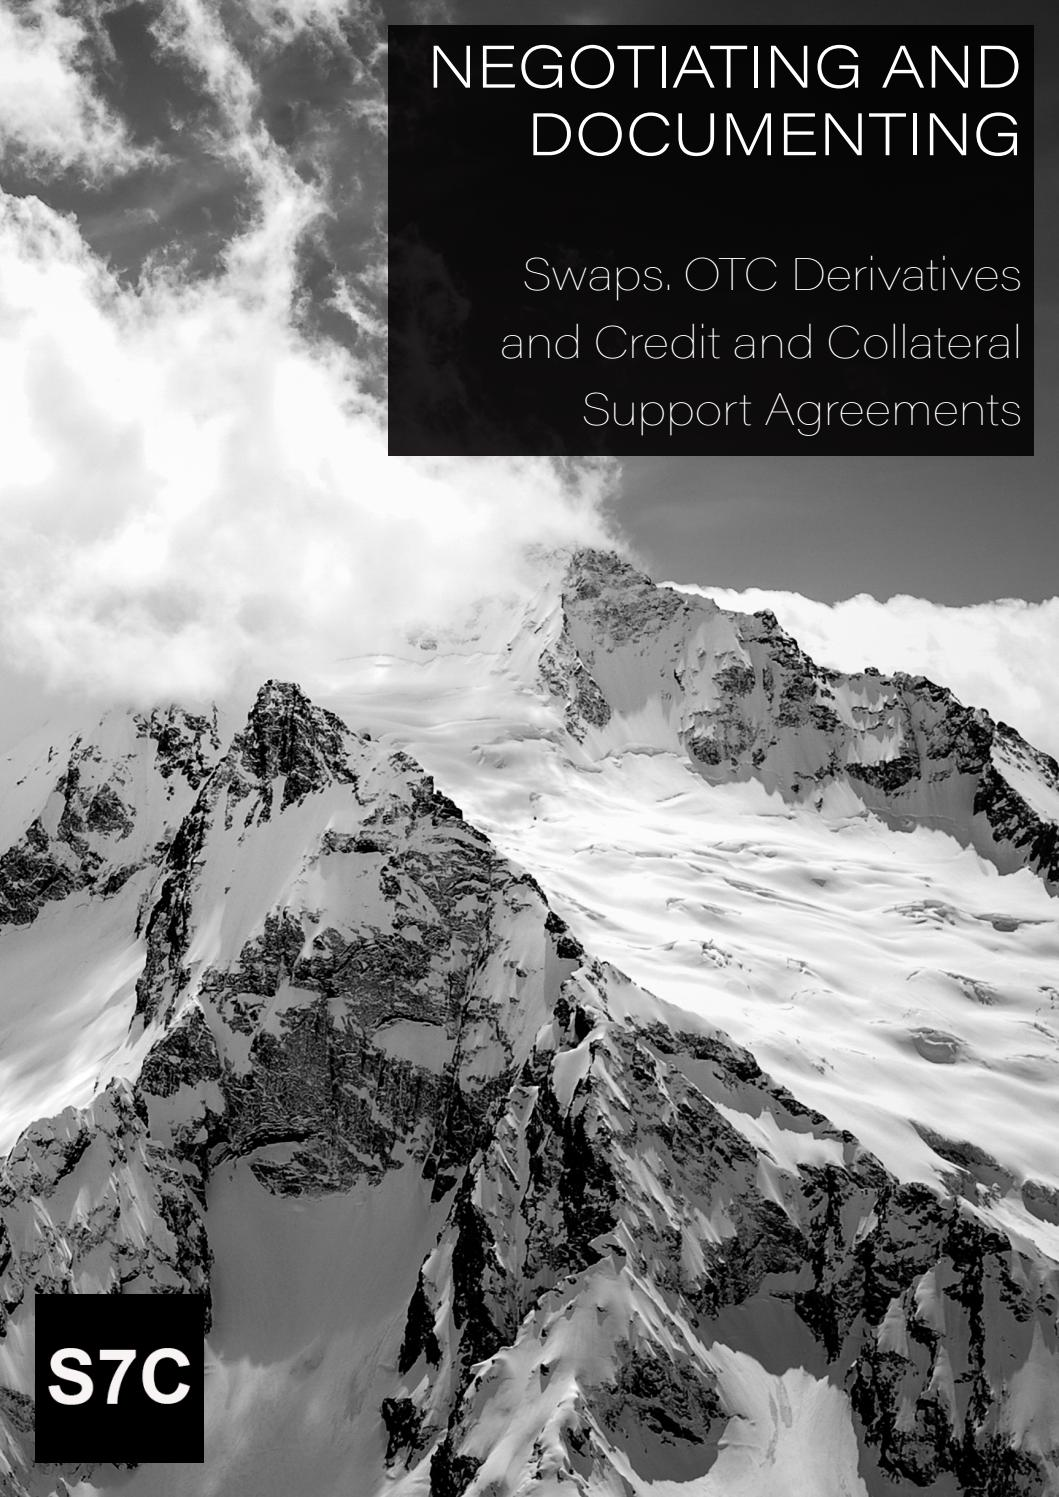 Negotiating and Documenting Swaps, OTC Derivatives and